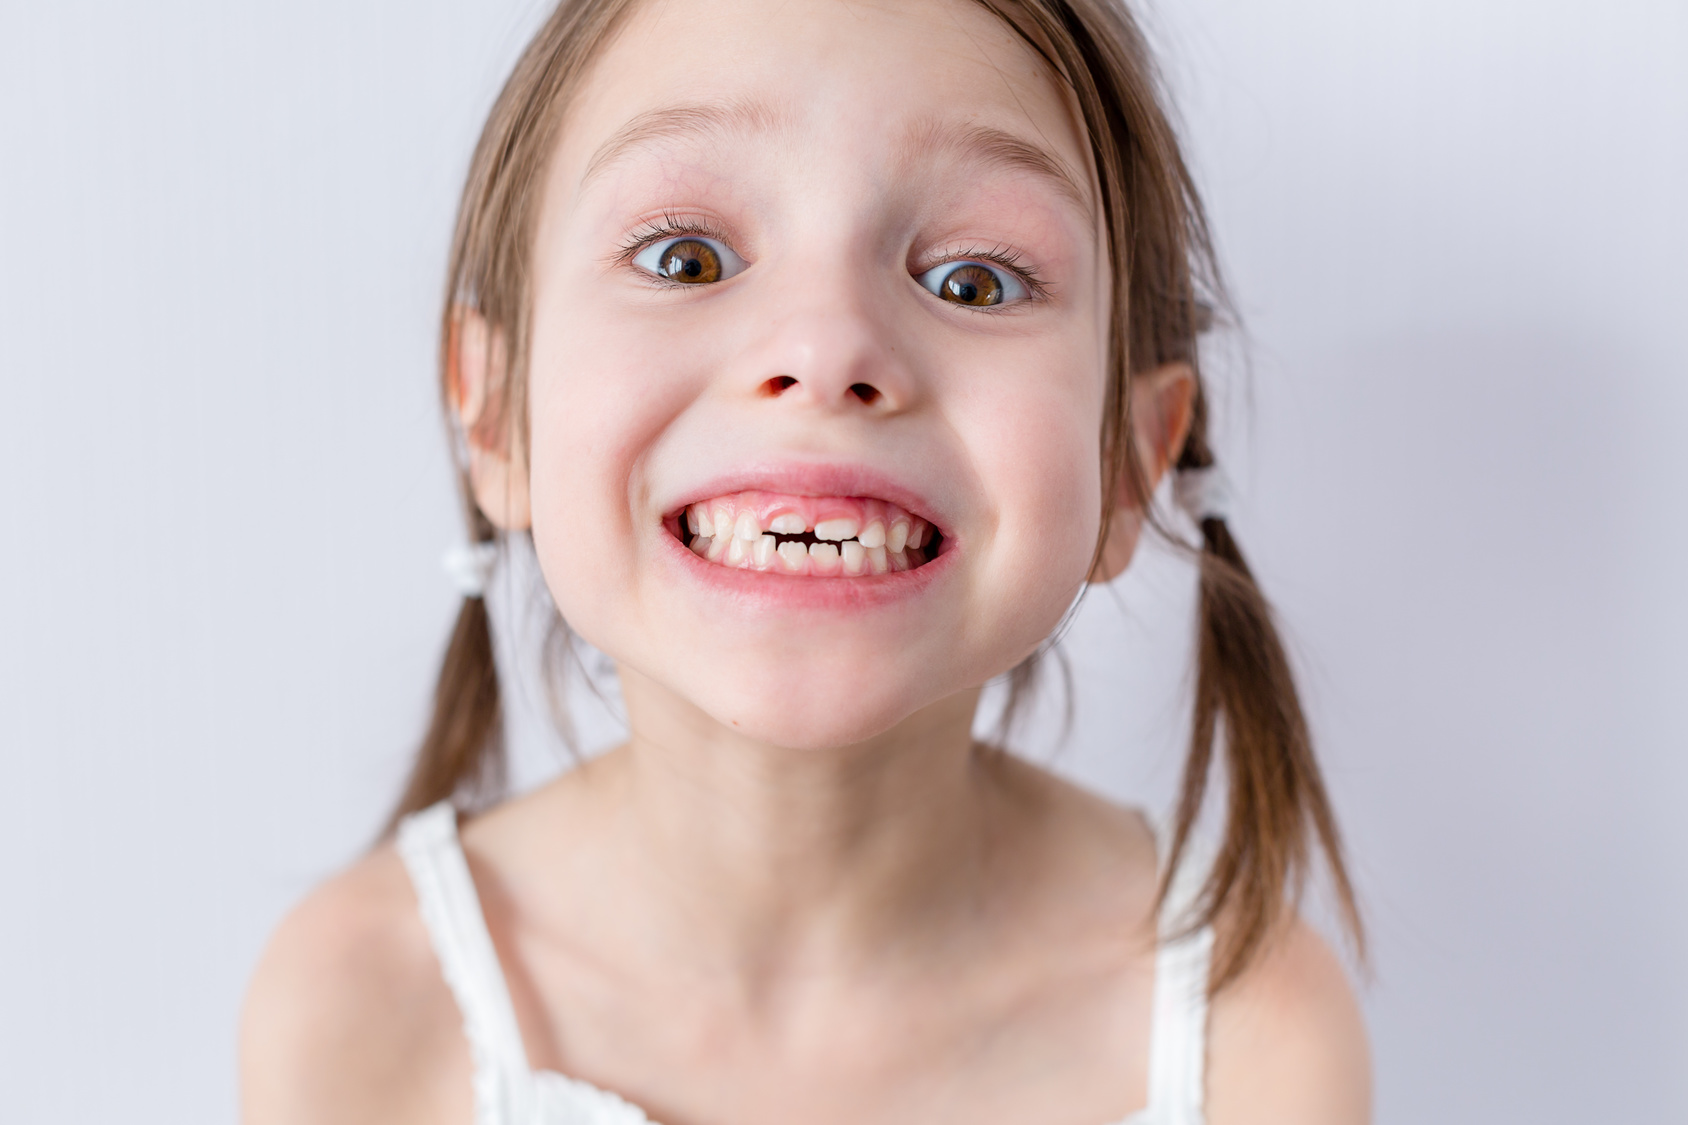 Close up portrait of preschooler girl with open mouth without milk tooth